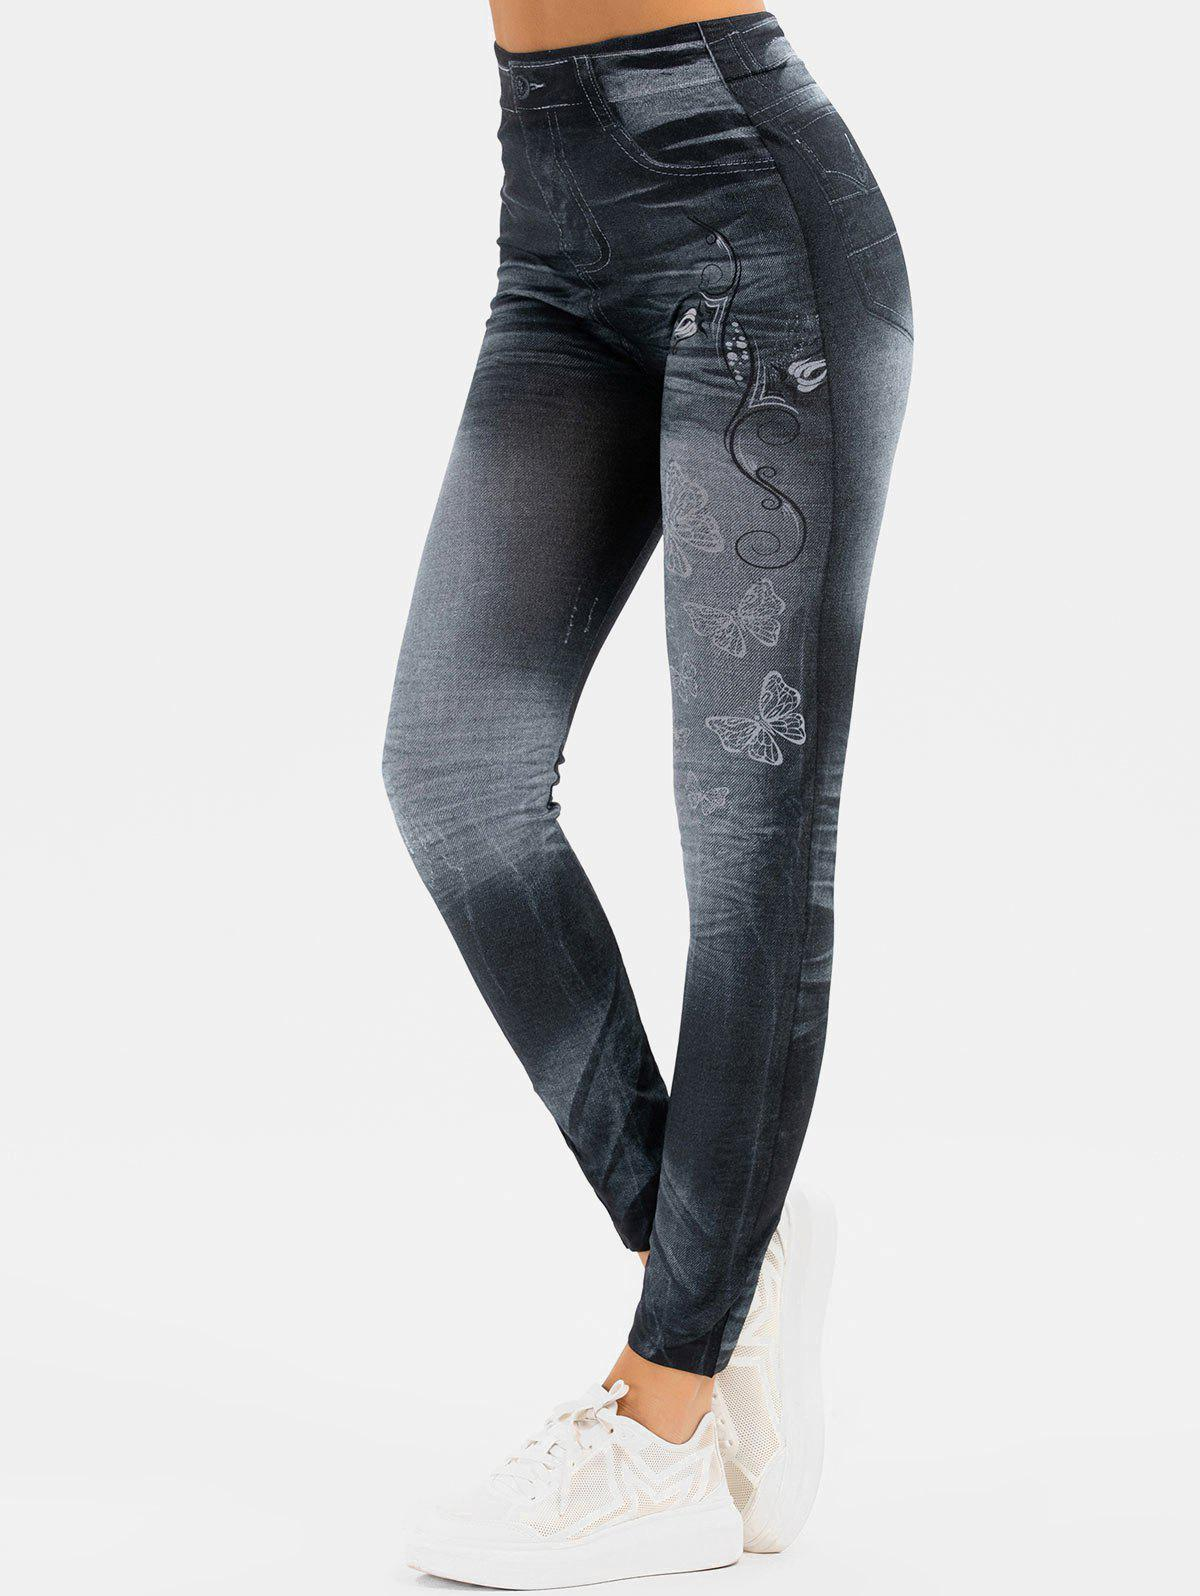 Butterfly Printed Skinny 3D Jeggings - BLACK ONE SIZE